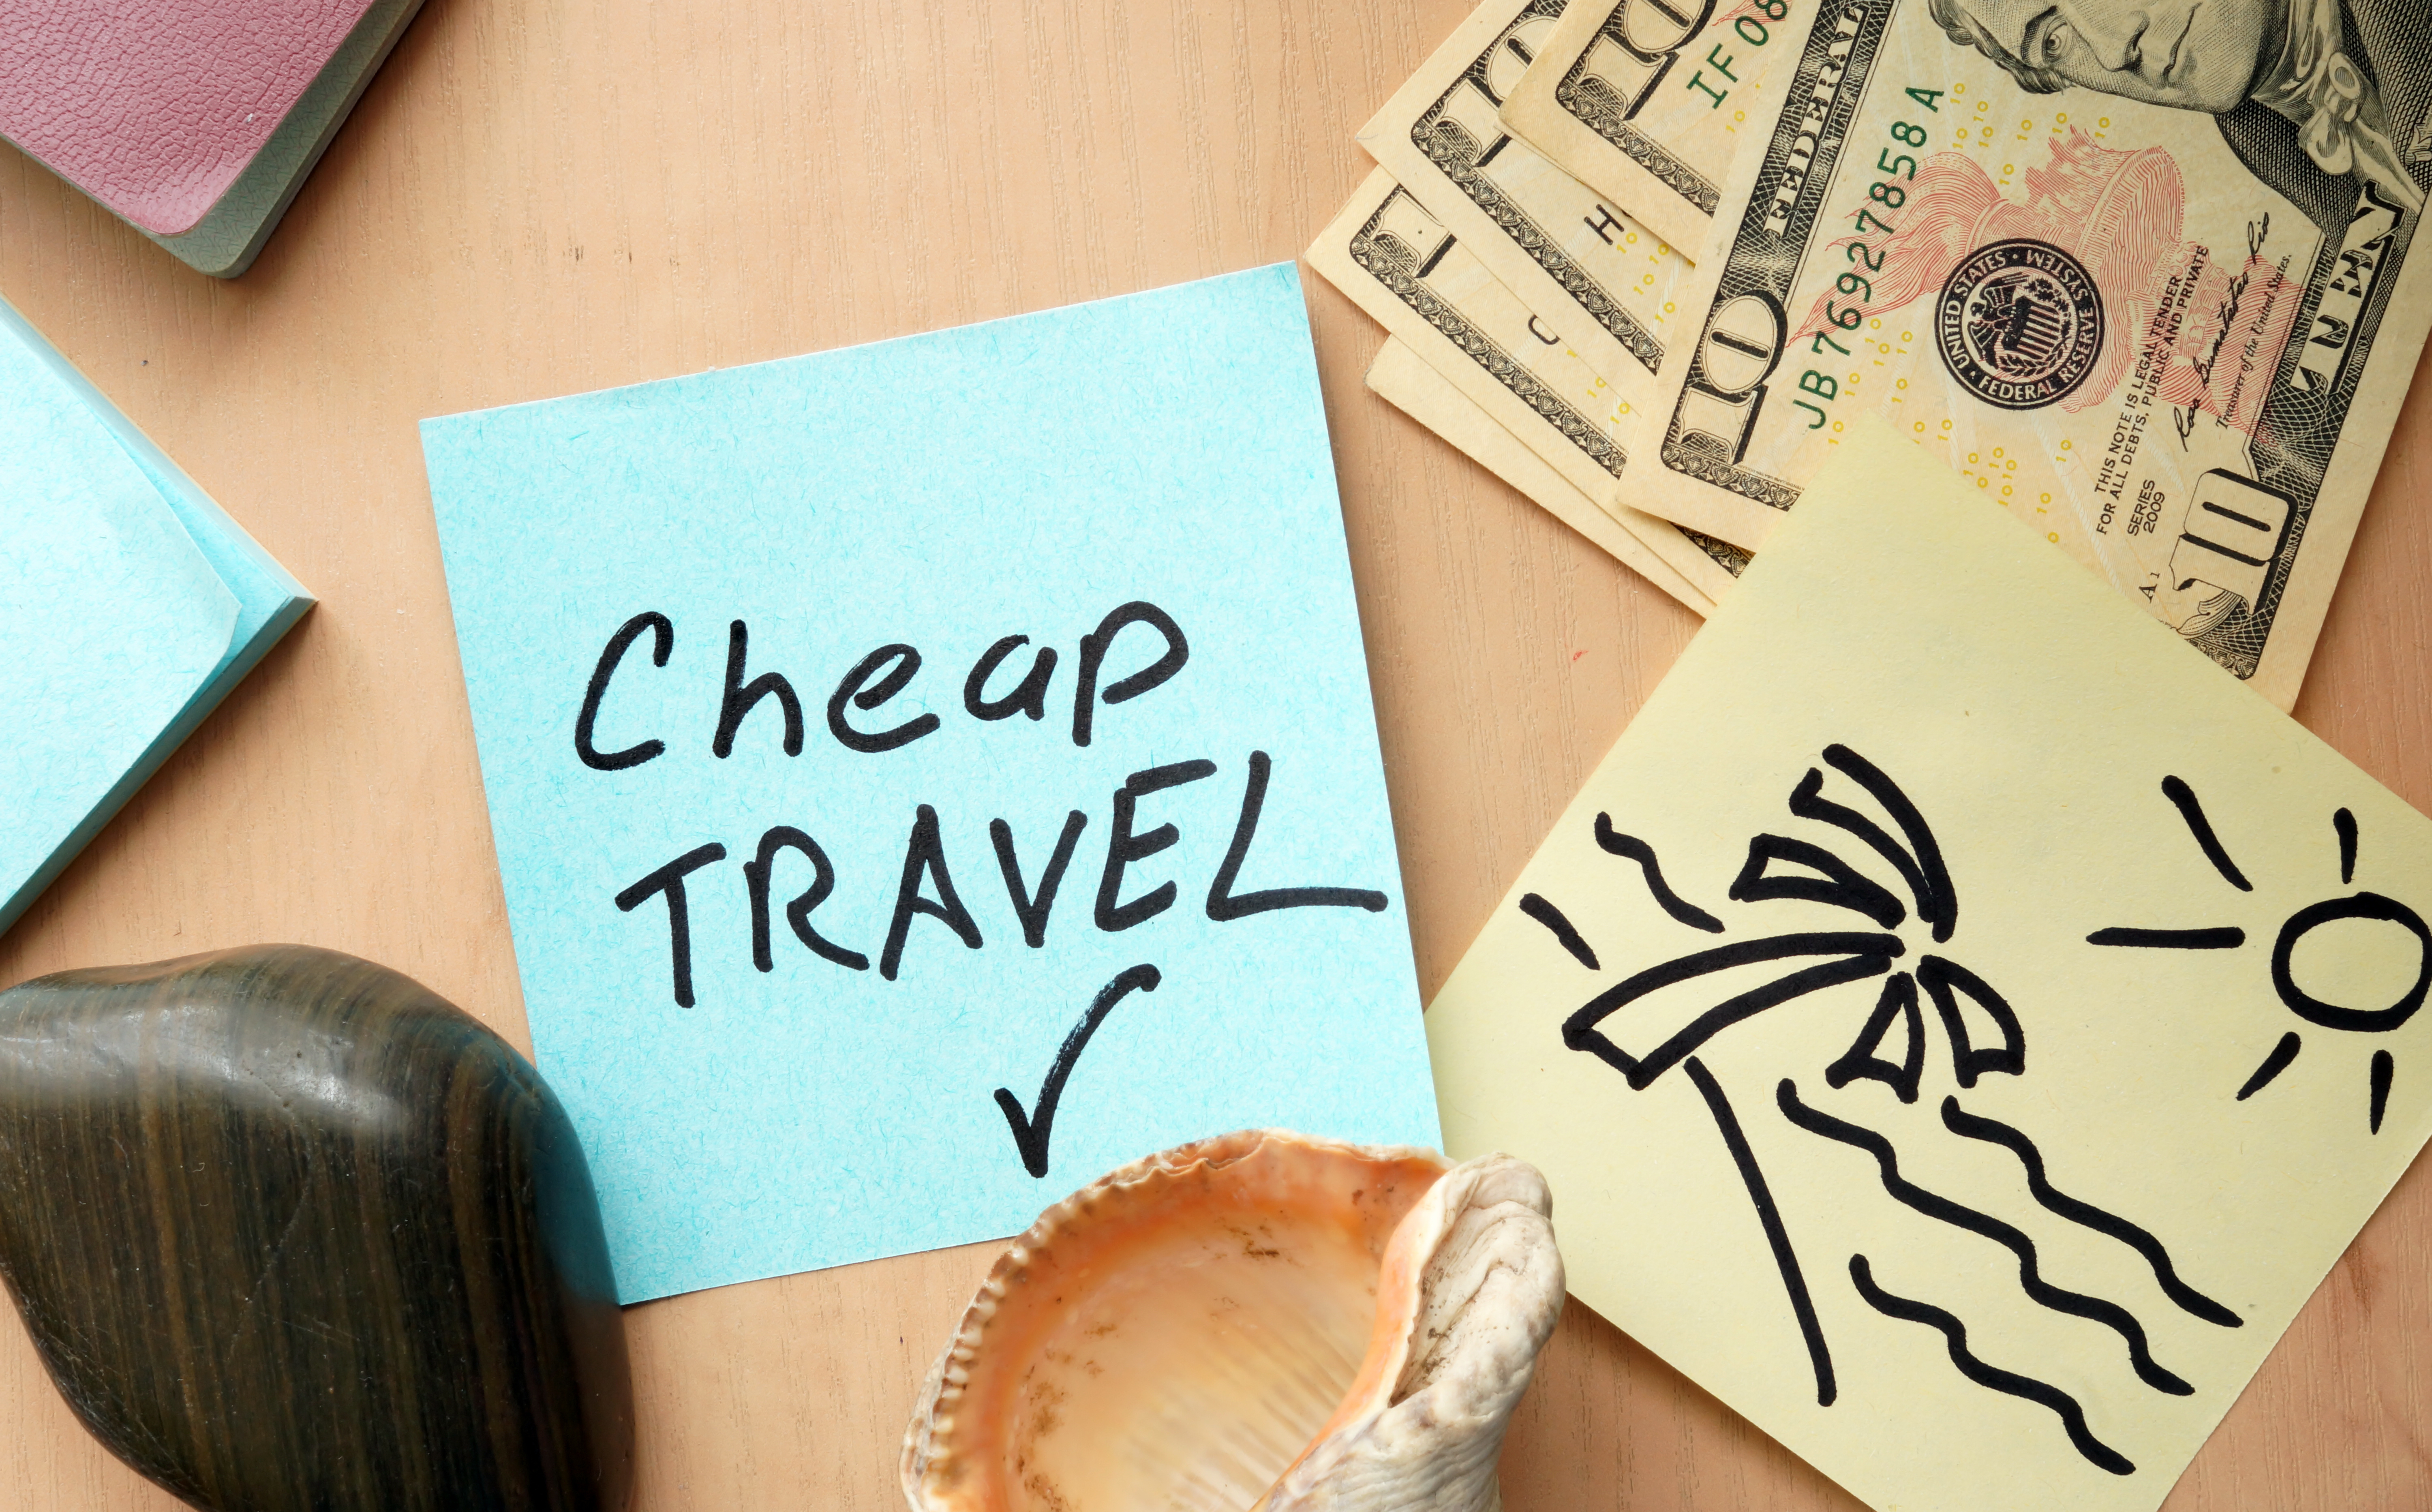 6 Smart Ways To Travel Cheaply - PenFed Your Money Blog - Nerdwallet